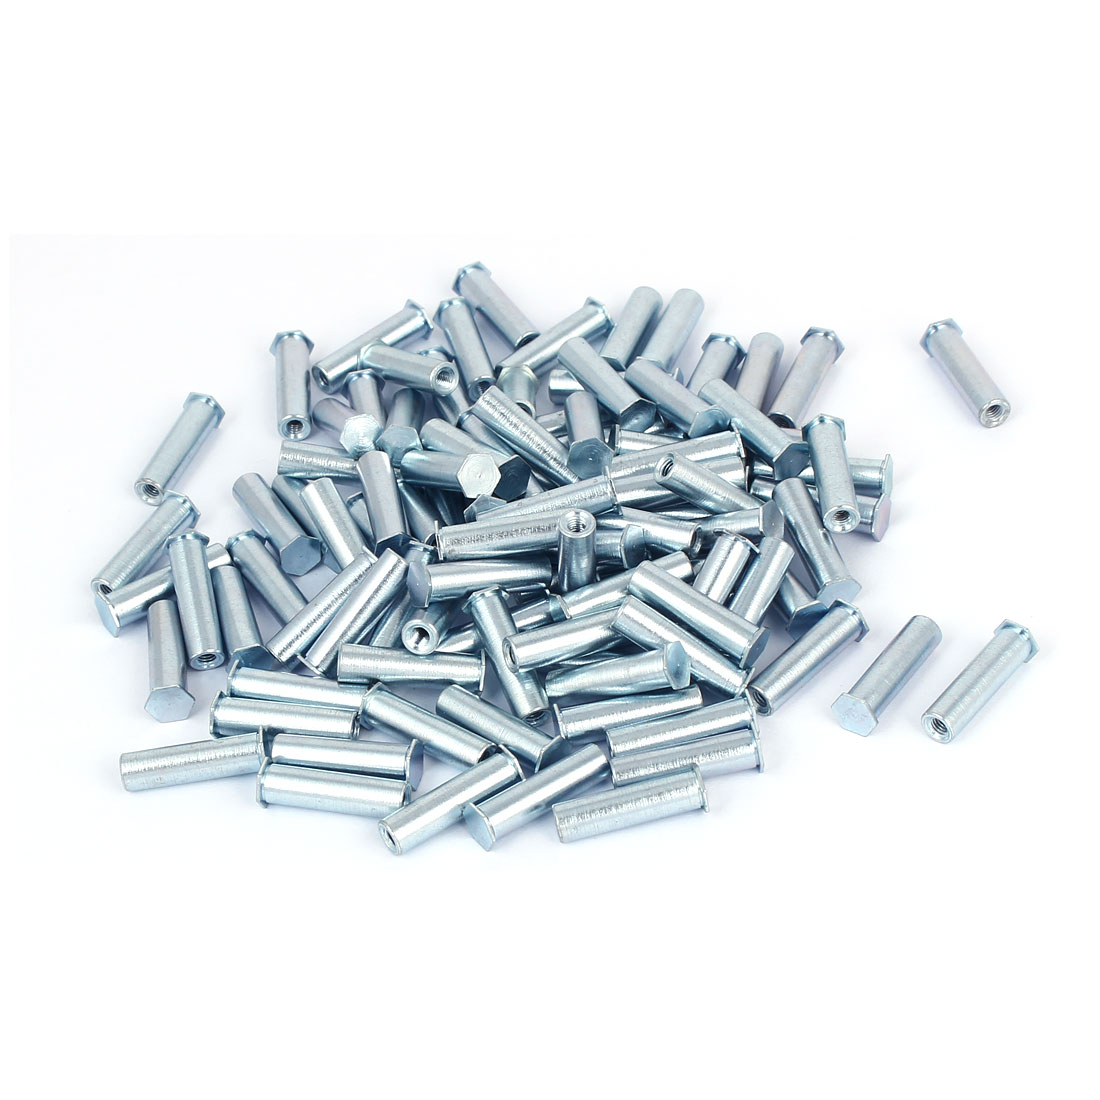 M3x20mm Blind Hole Zinc Plated Carbon Steel Self Clinching Standoff 100pcs